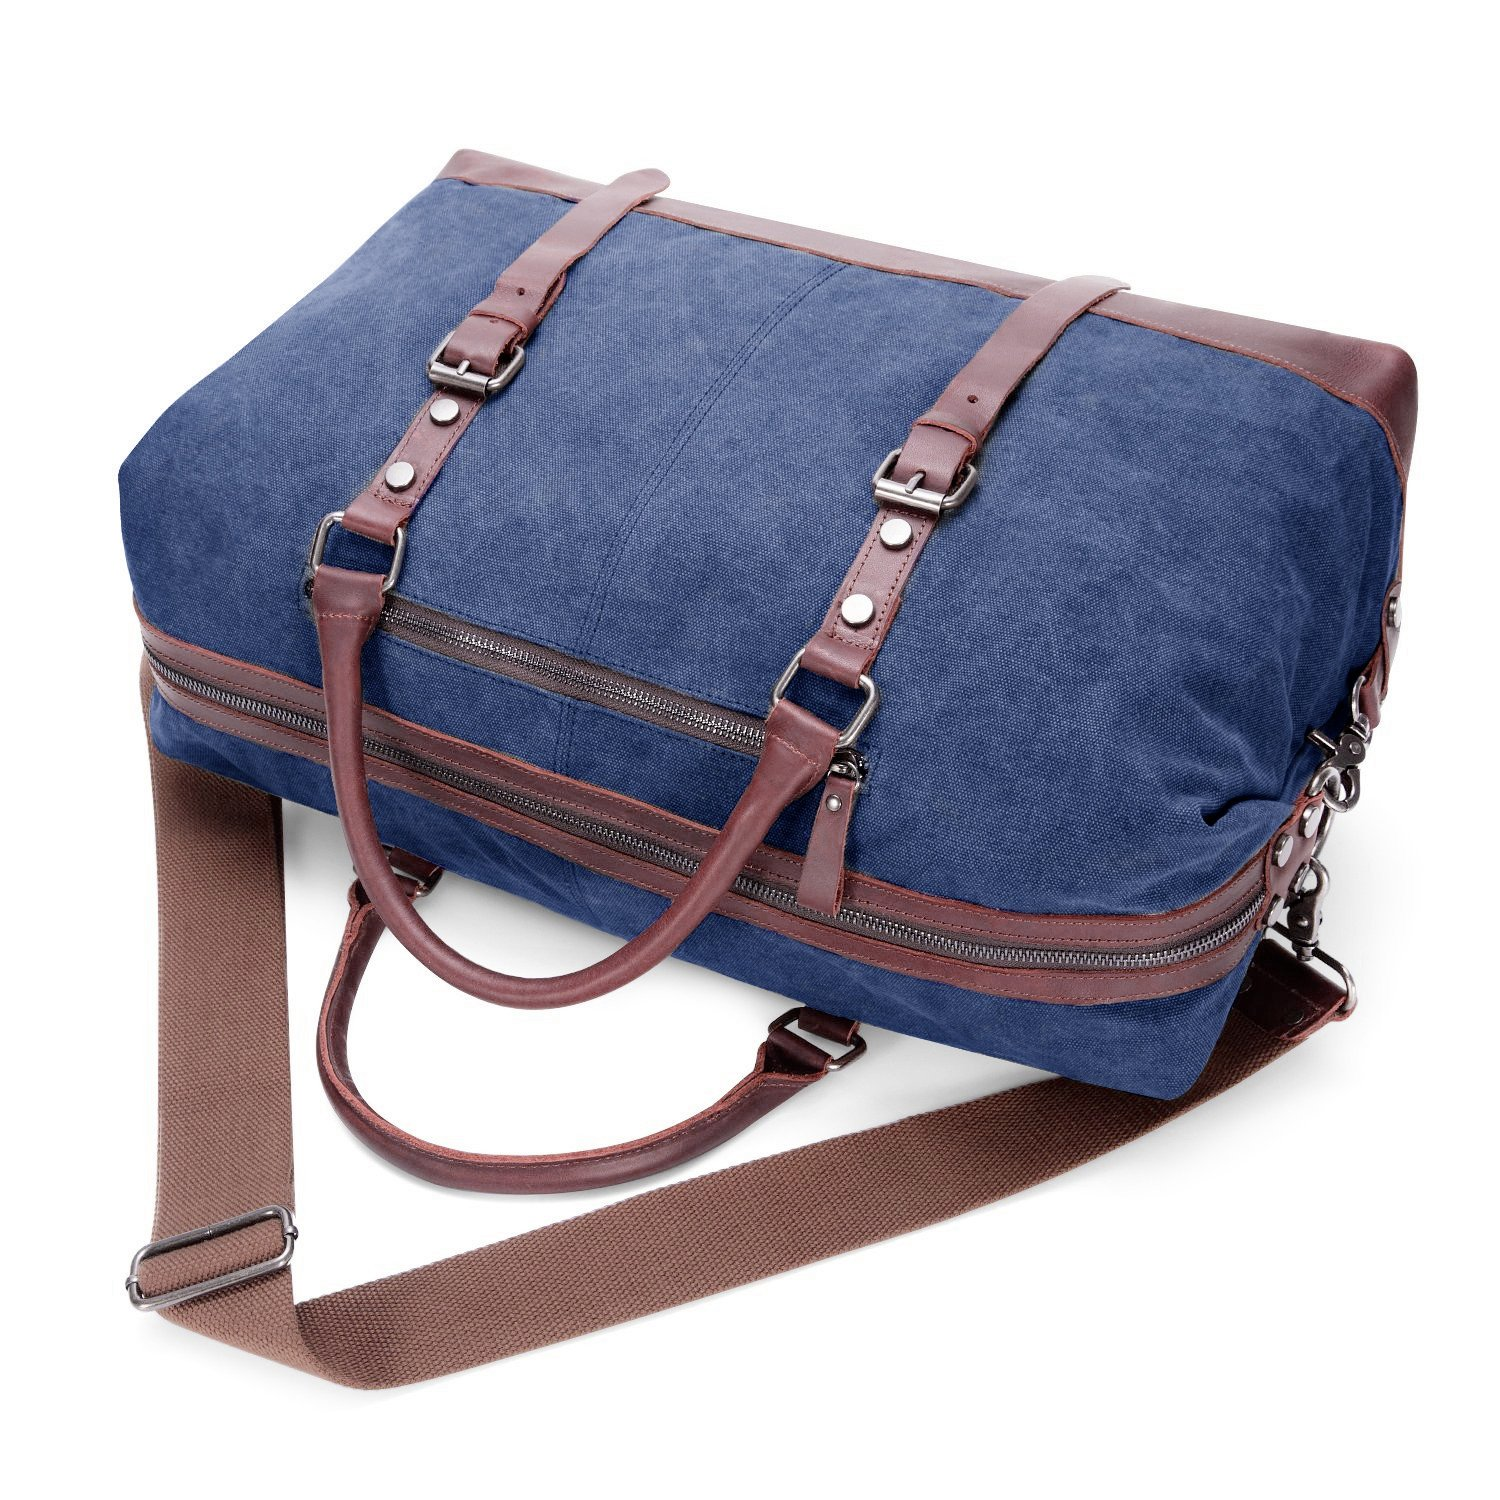 690ba655846 BAOSHA Canvas PU Leather Travel Tote Duffel Bag Carry on Bag Weekender  Overnight Bag